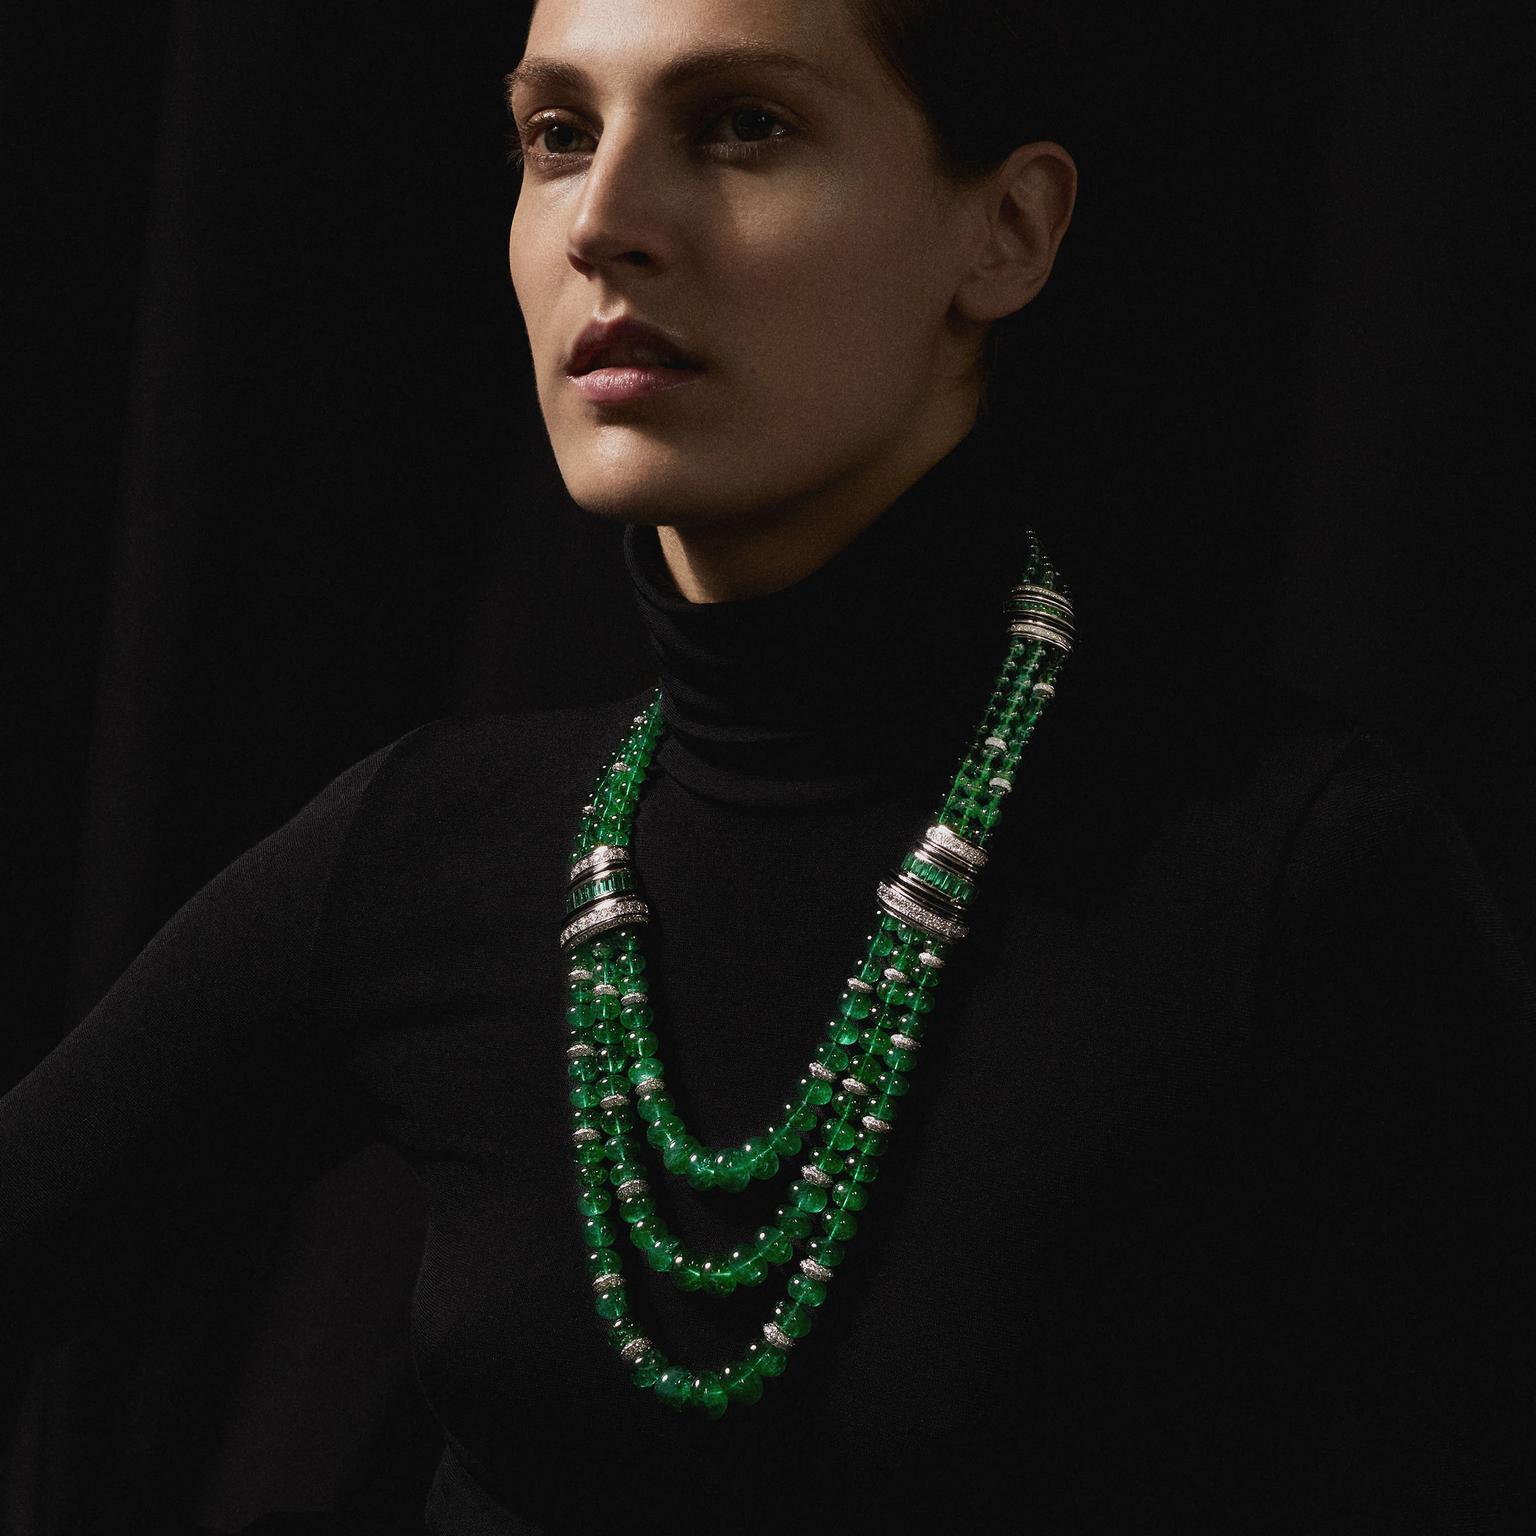 Plastron Emeraudes necklace by Boucheron on model